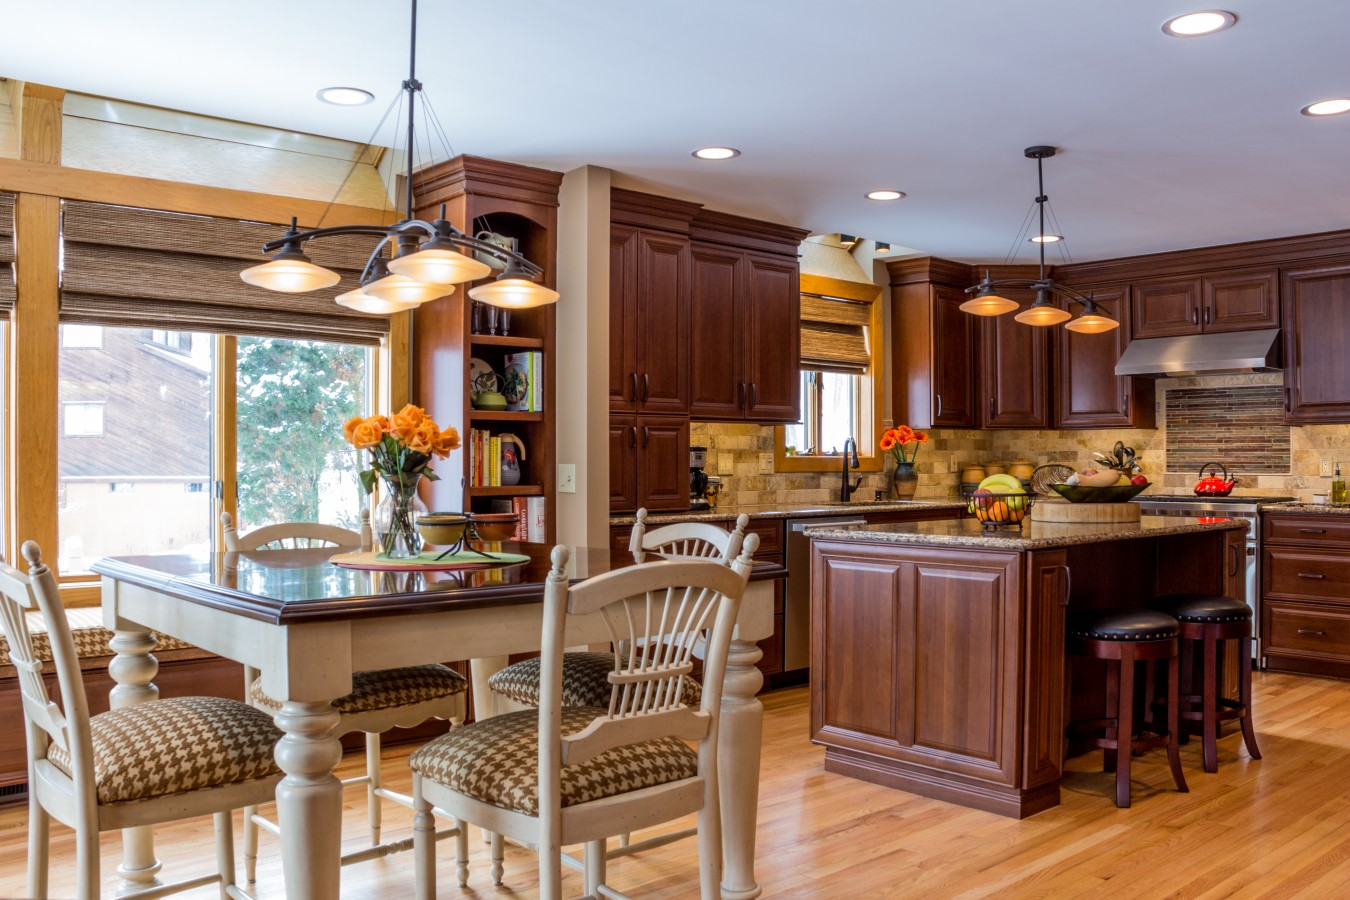 cottage warmth. see gallery. dream kitchens ... MOEUCQO